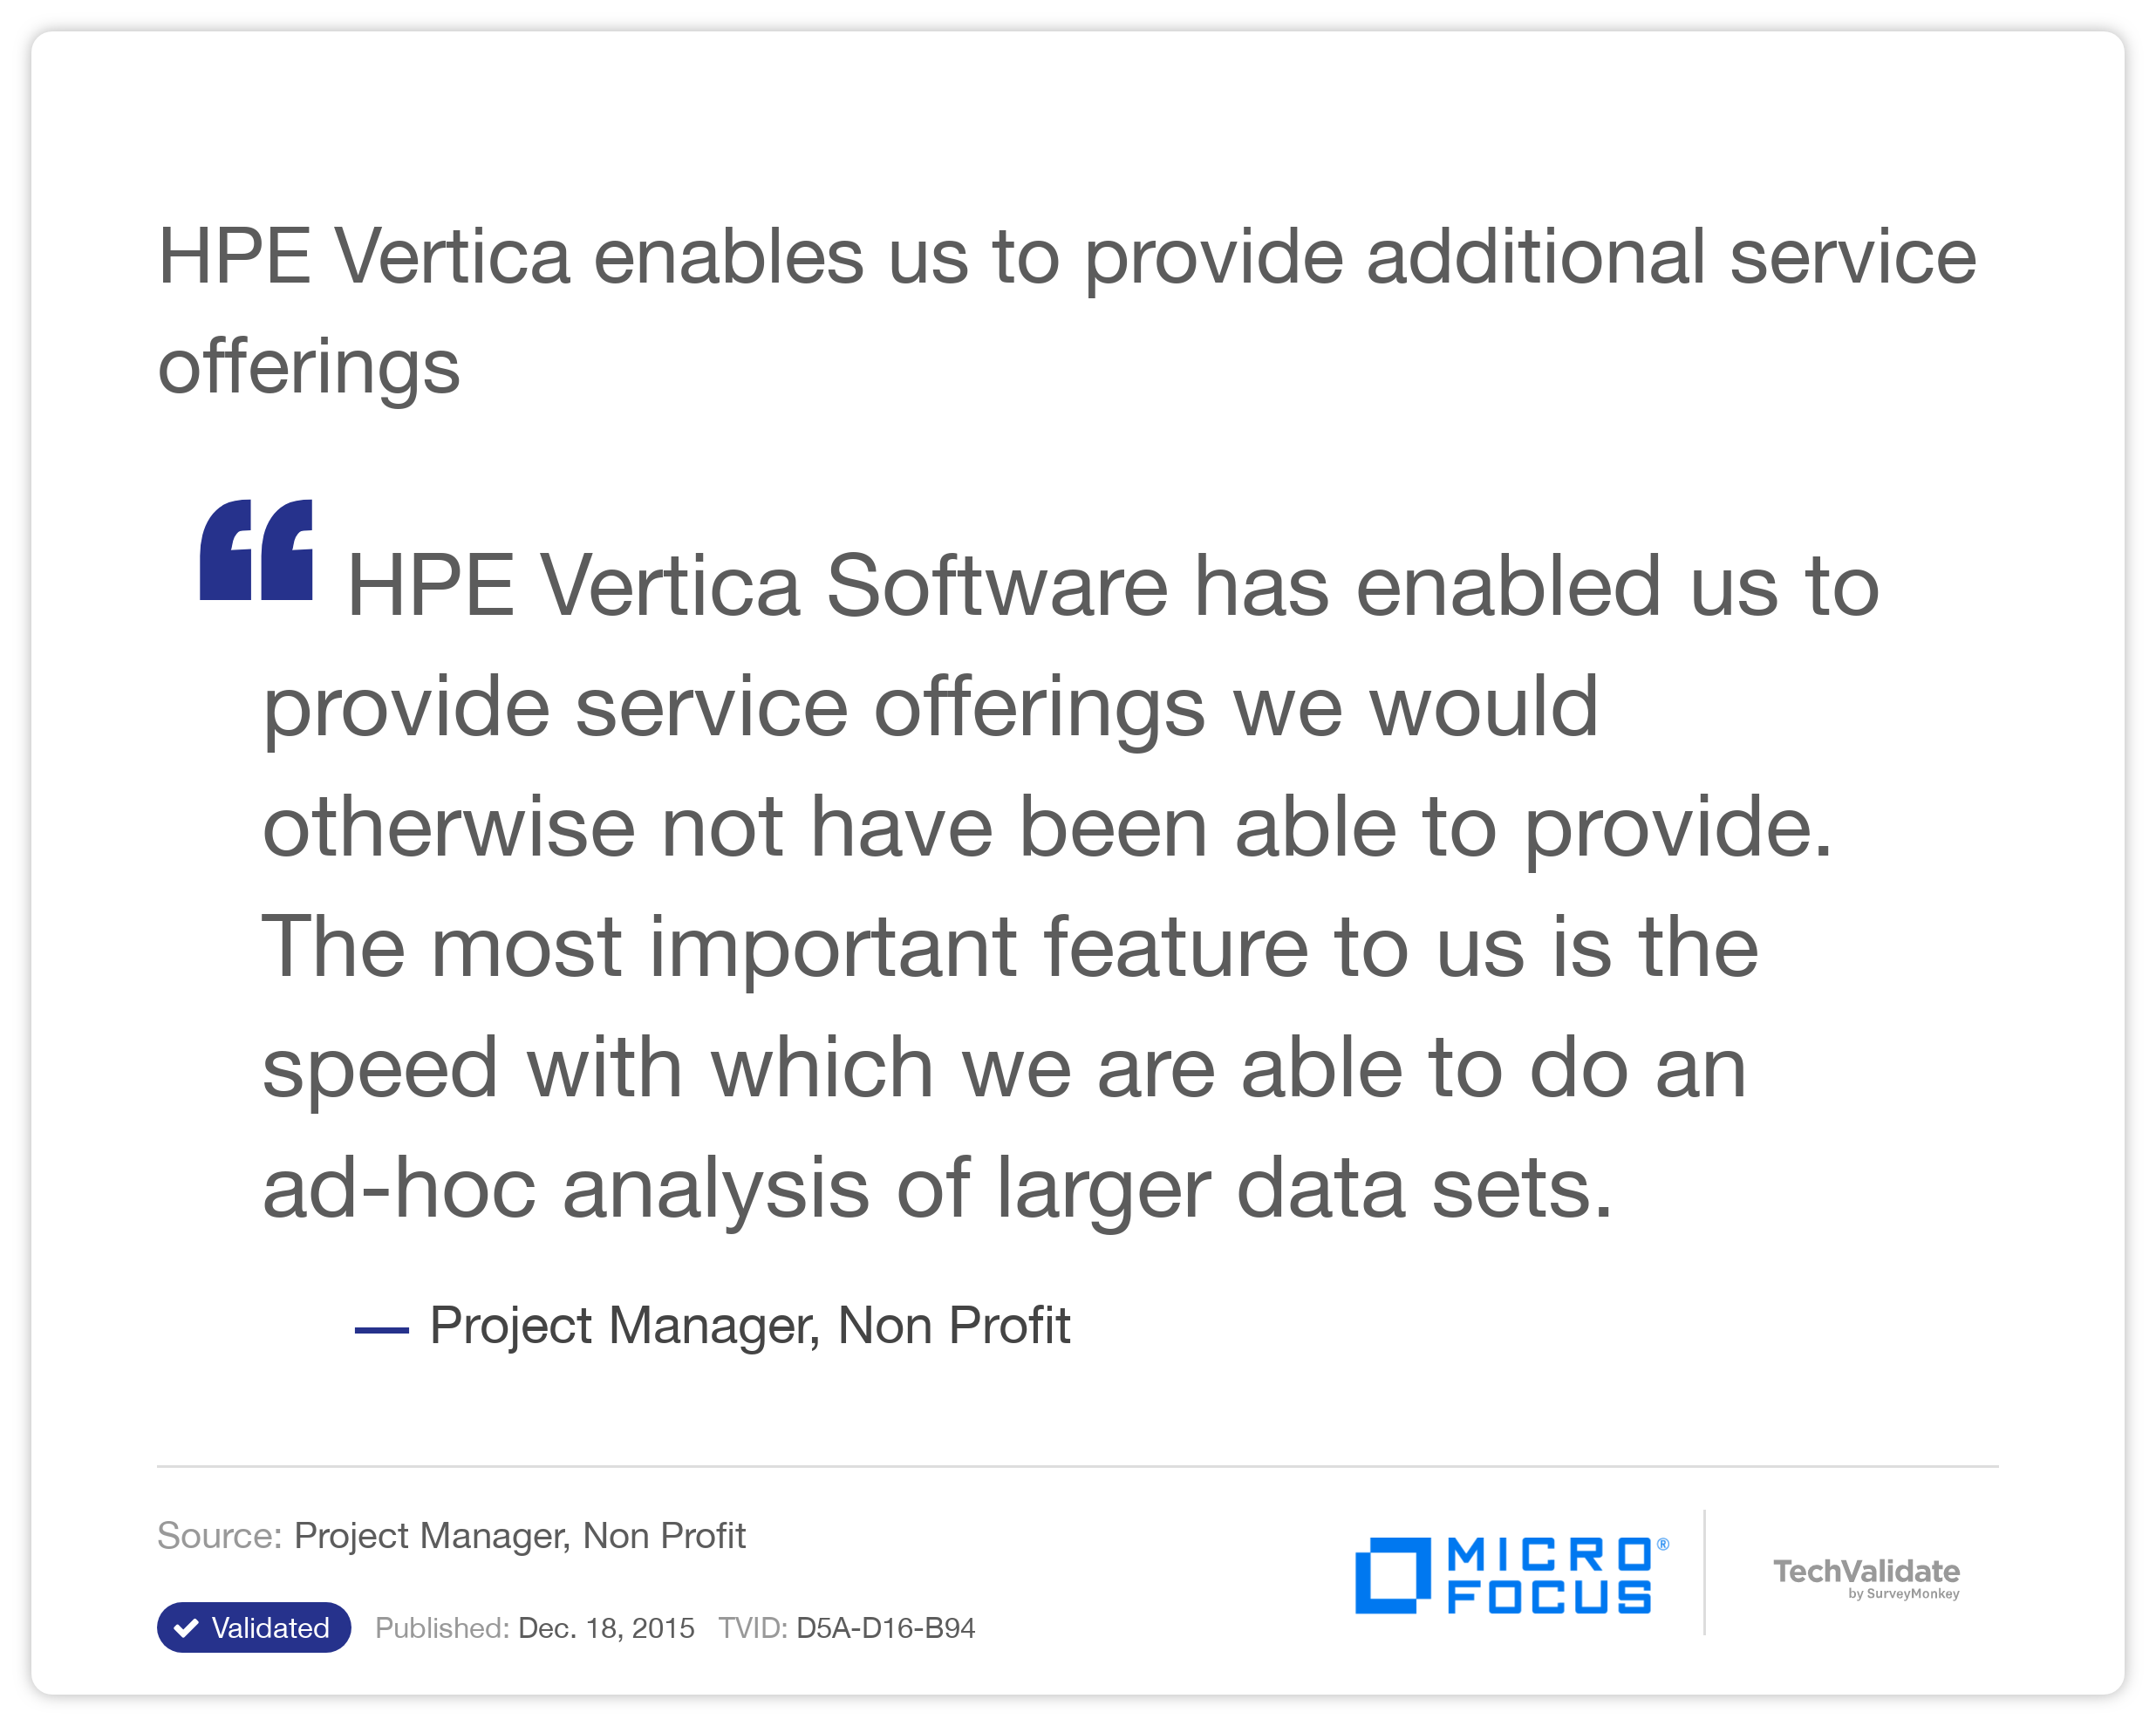 HP Vertica enables us to provide additional service offerings